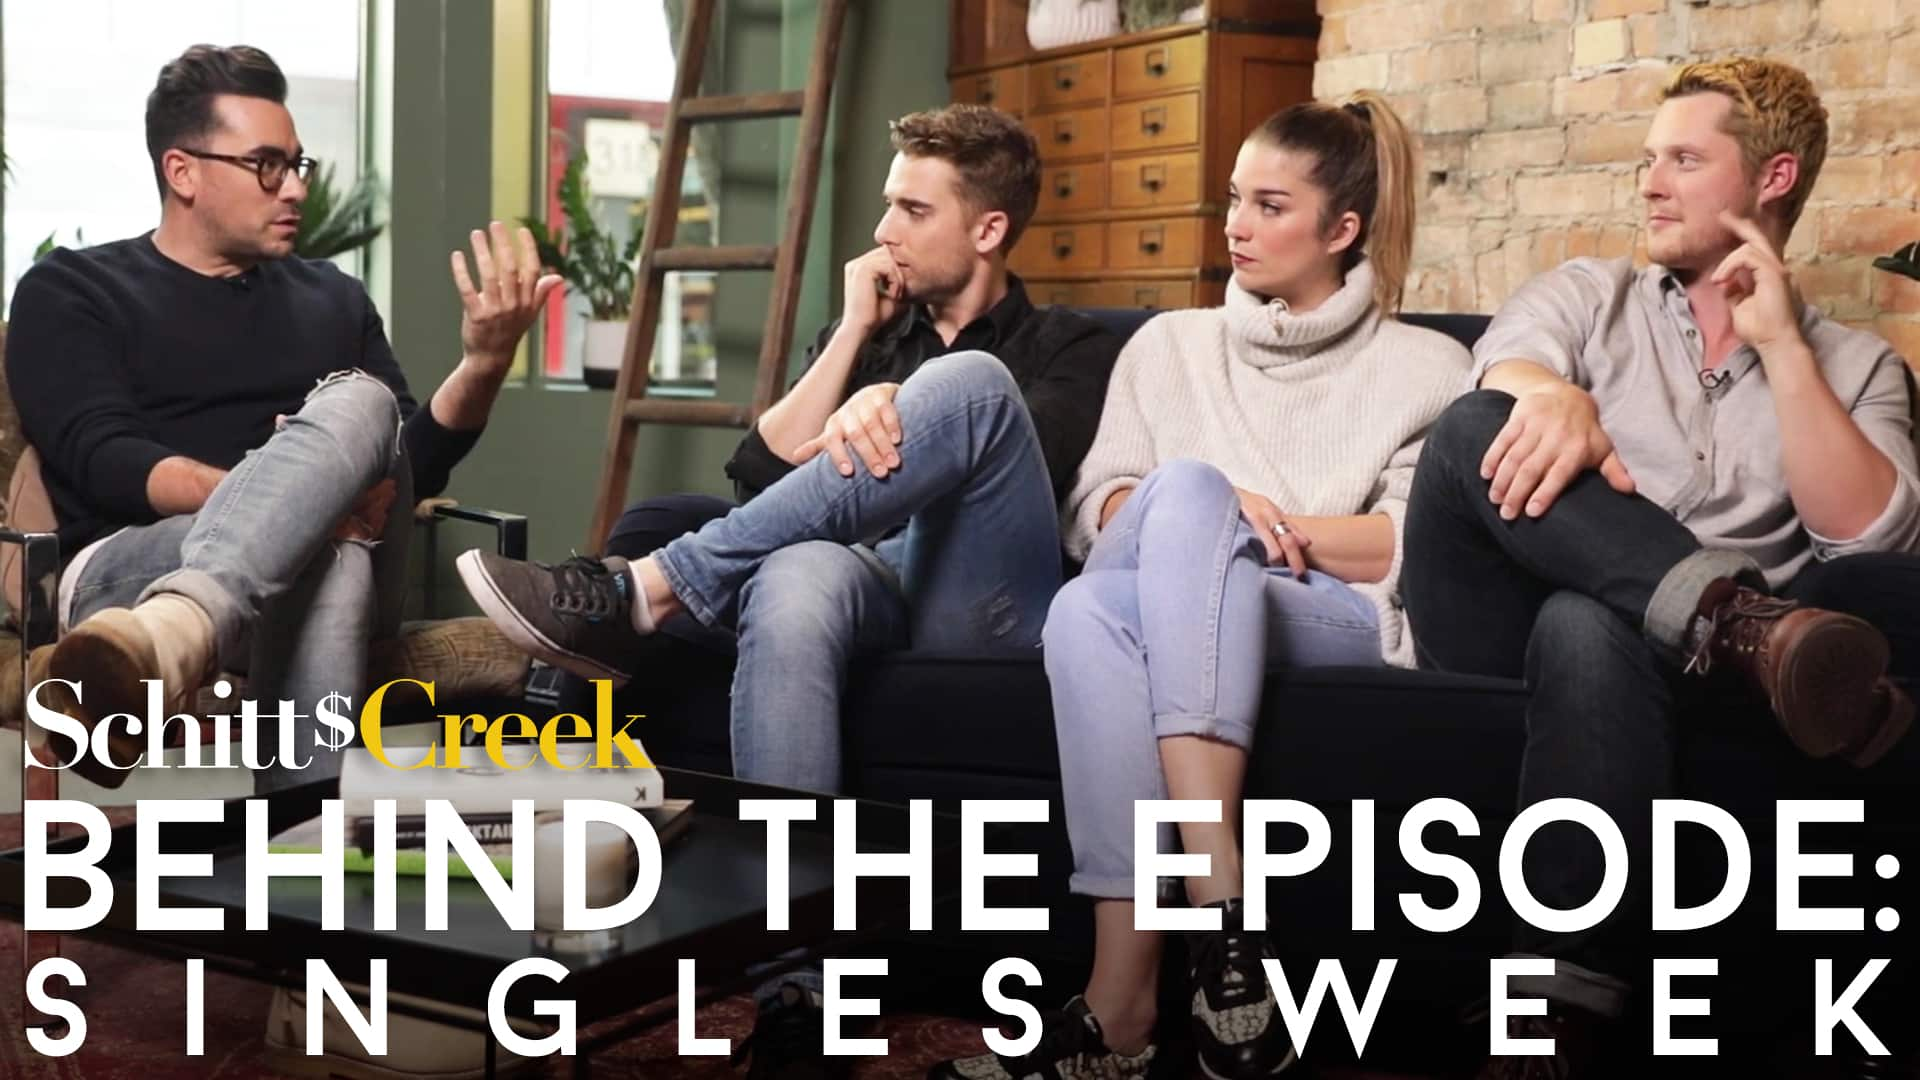 Singles Week | Behind the Episode